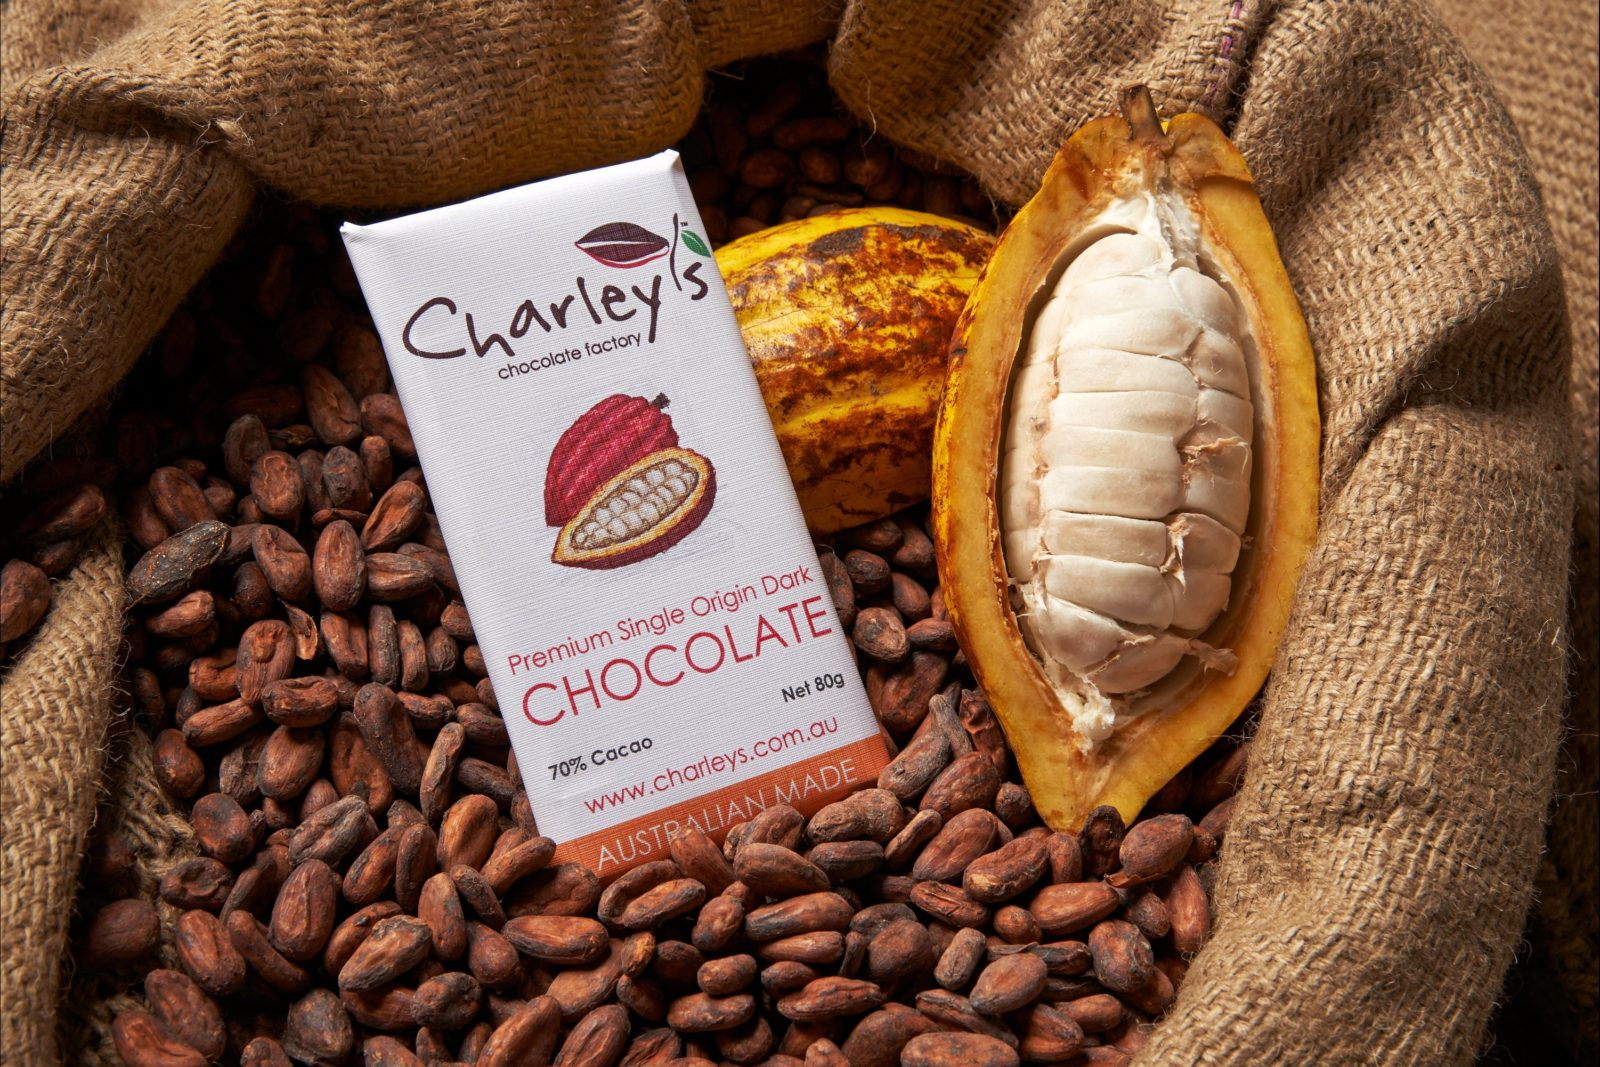 Charley's Chocolate, cocoa beans and cocoa pod